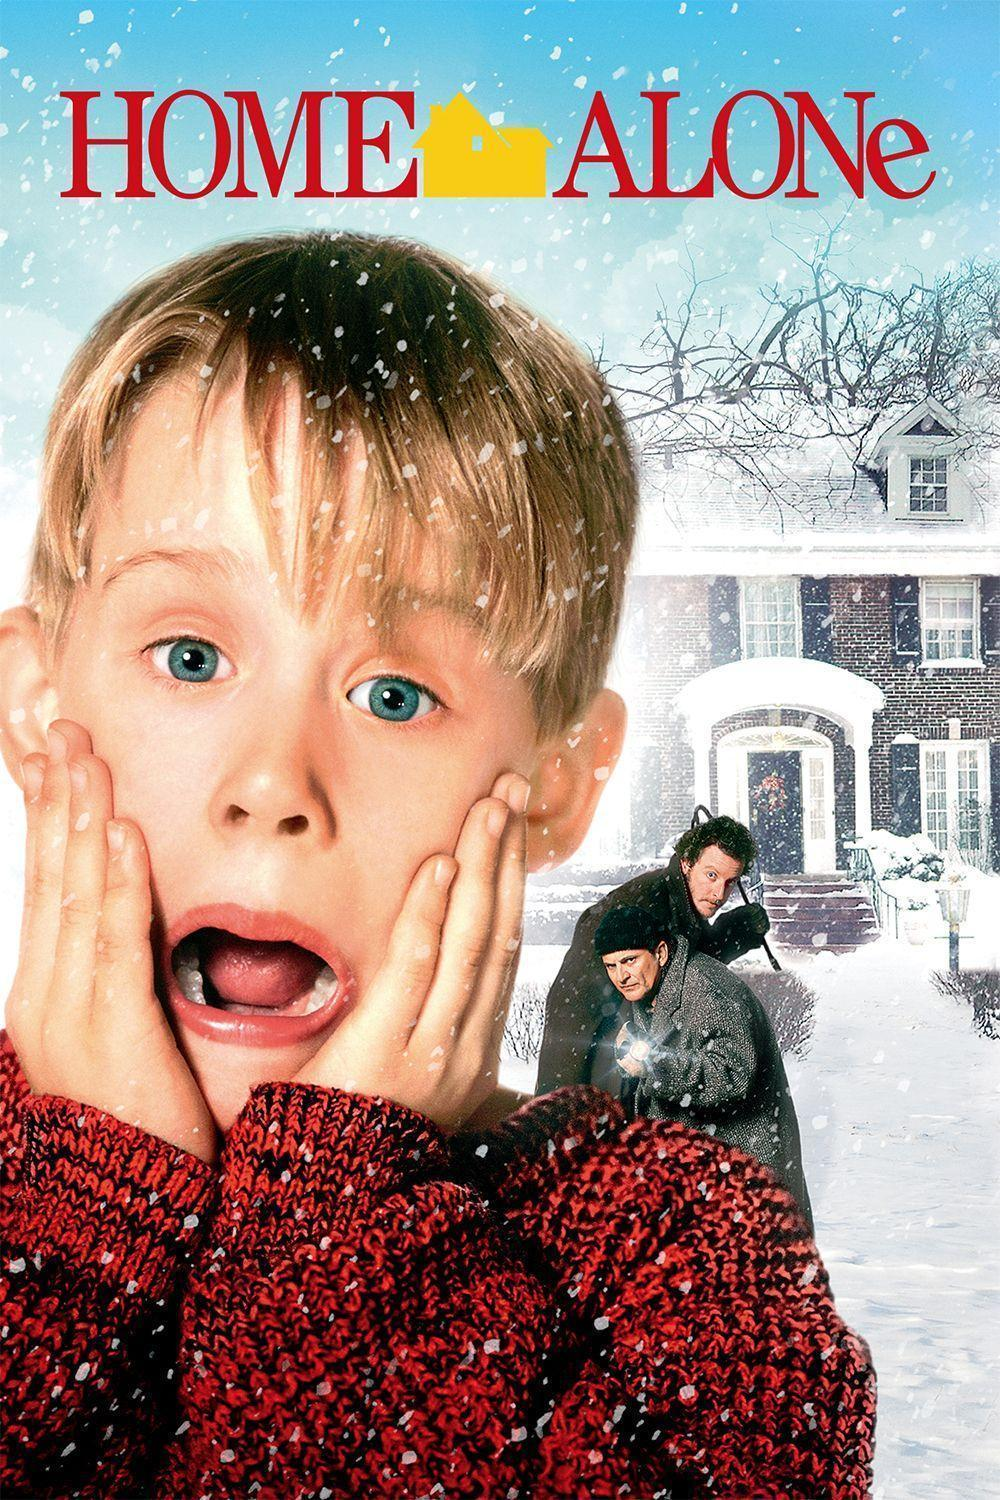 1000x1000px Home Alone 380.88 KB